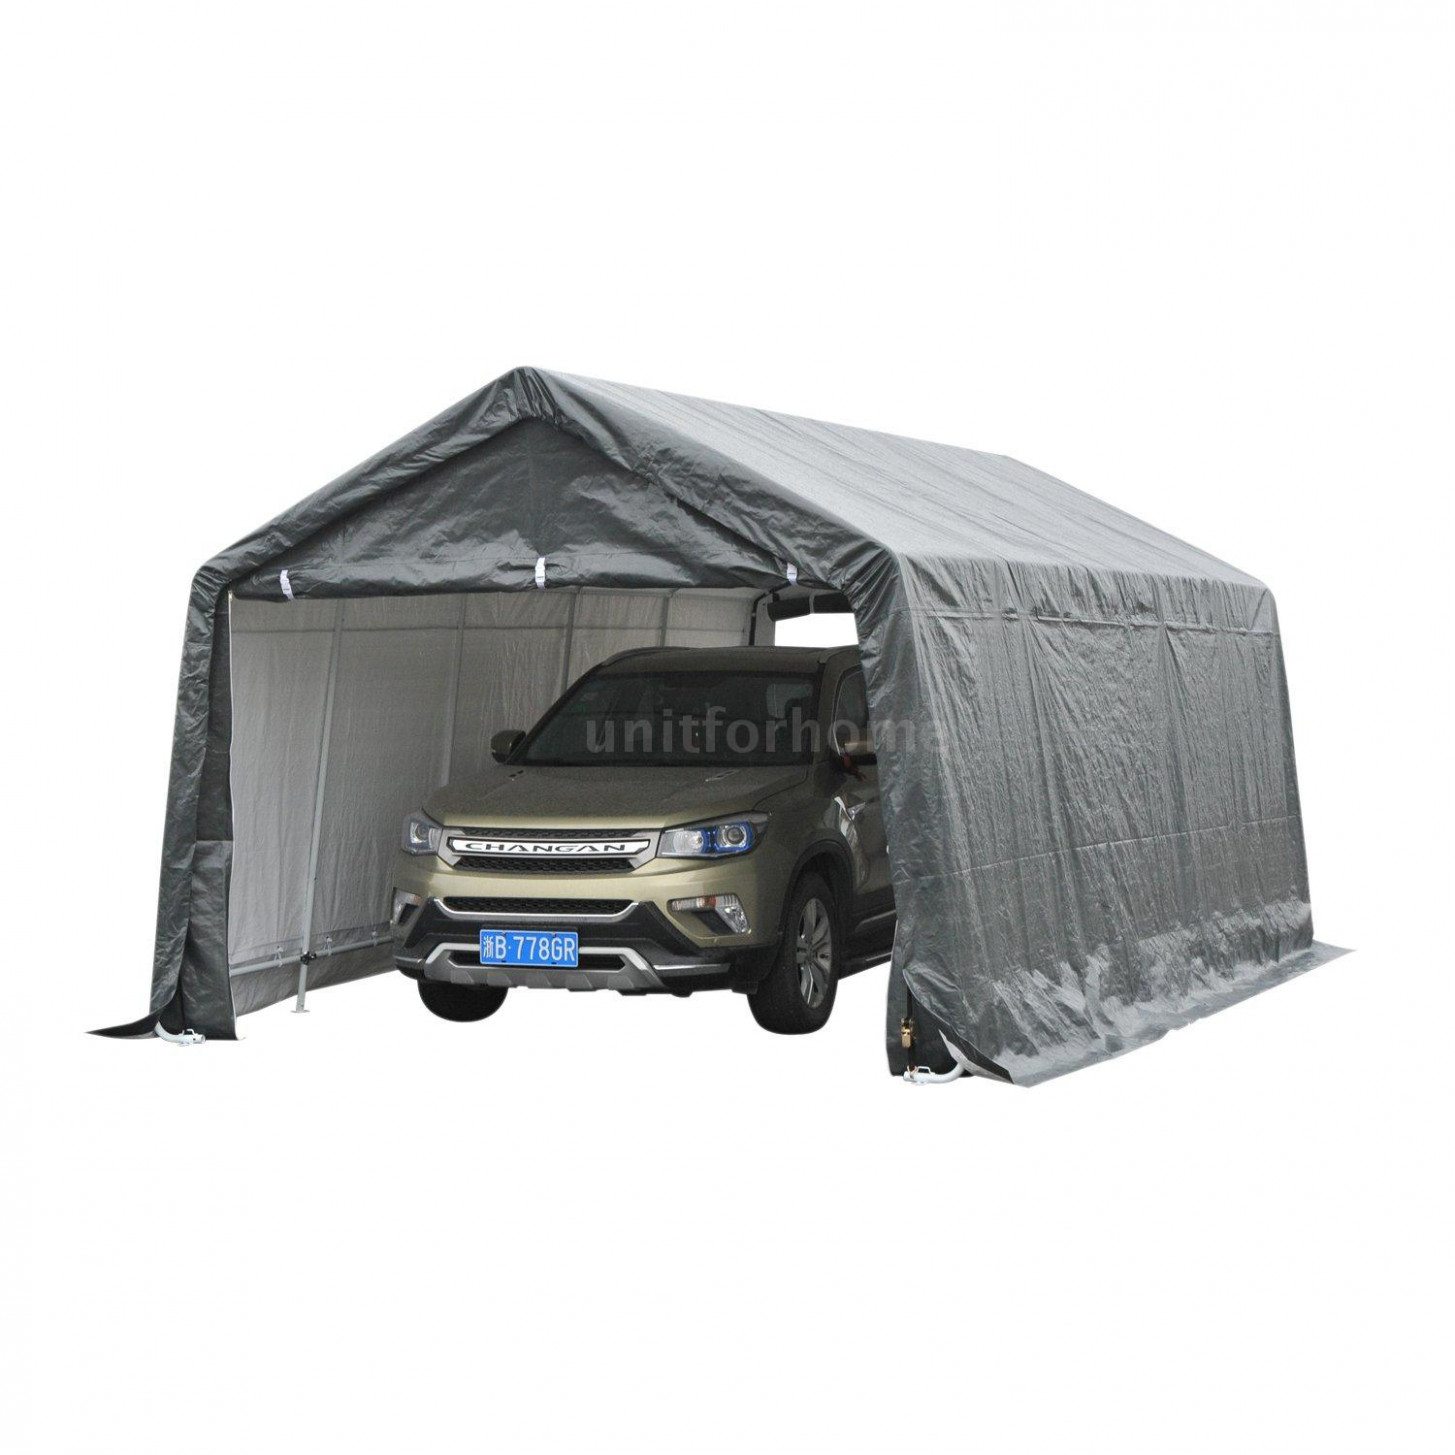 Details About 8' X 8' Heavy Duty Enclosed Vehicle Shelter Carport Grey T8O8 Enclosed Carport Canopy